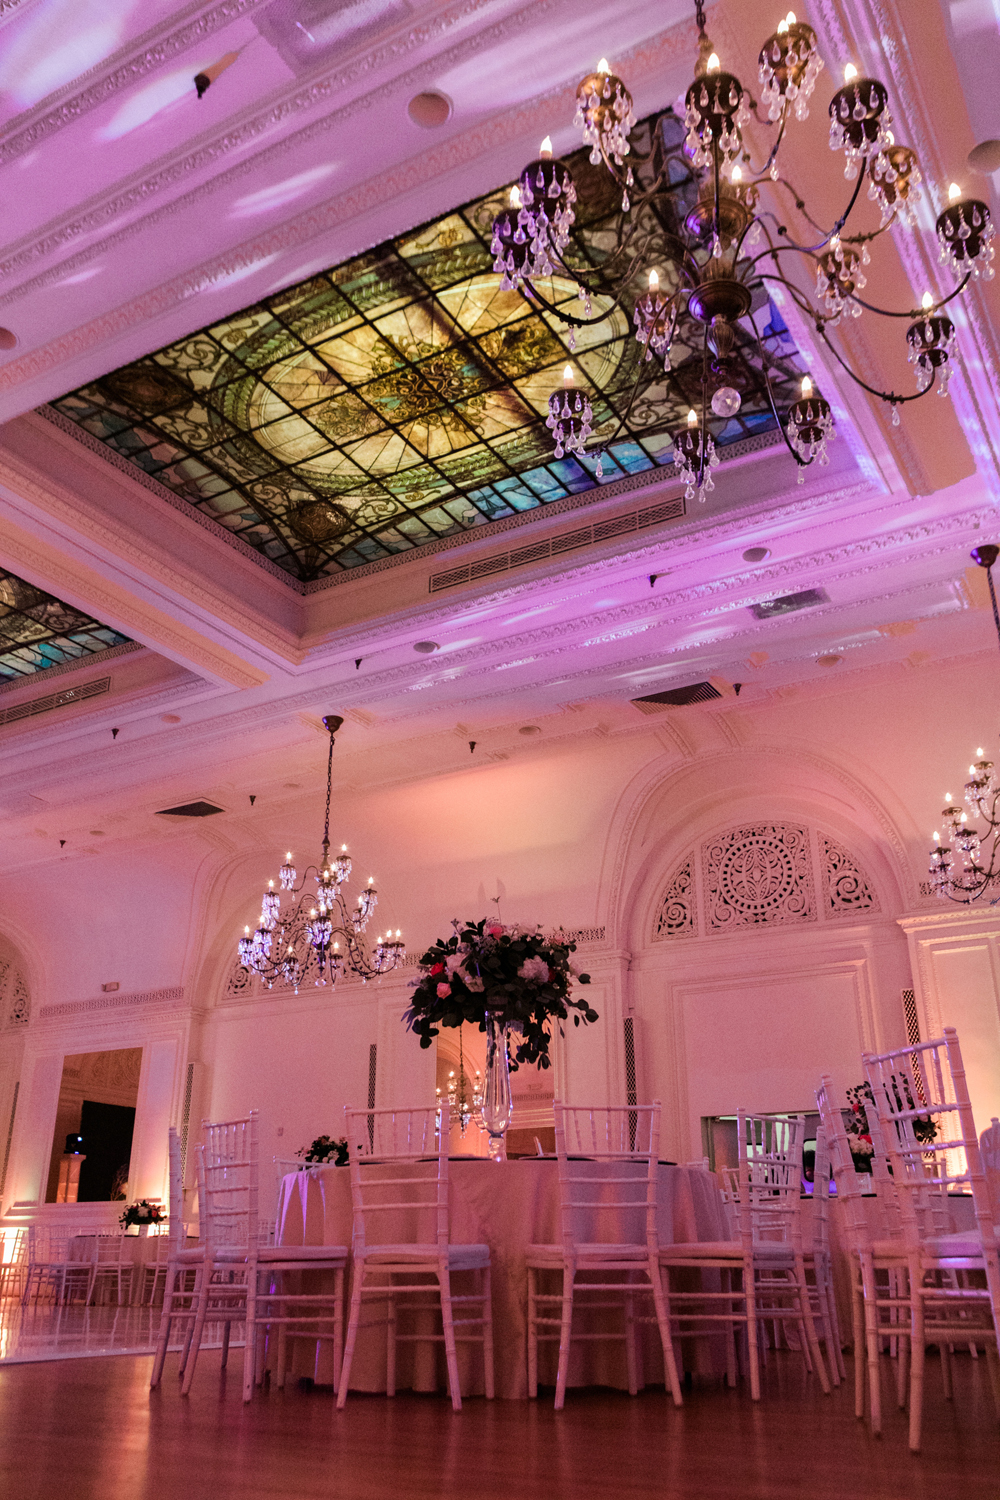 2f7e0-pretty-in-pink-vintage-hollywood-fiesta-wedding-alexandria-ballroom-palm-court-room-tiffany-skylight-and-chandeliers.jpg